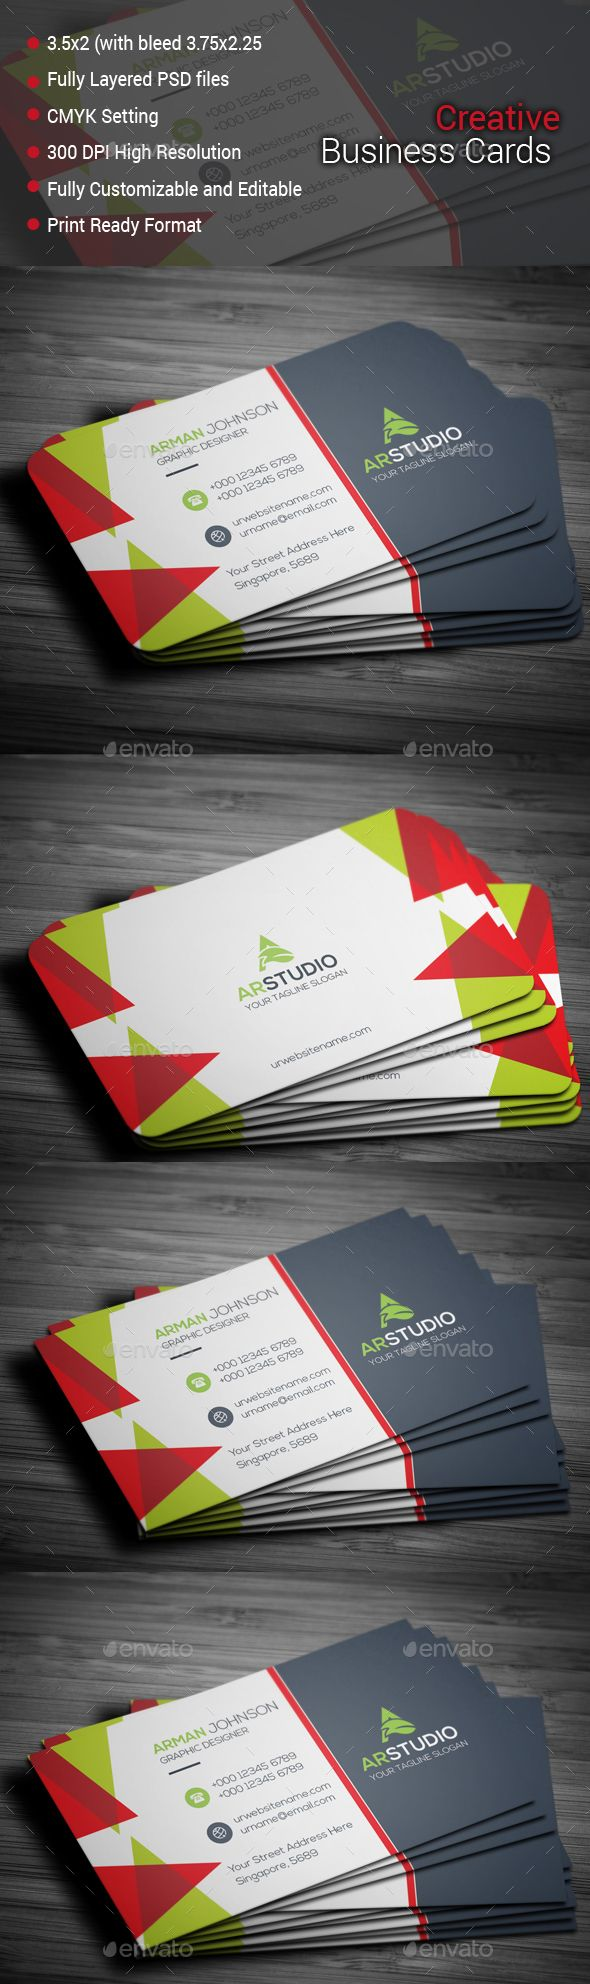 3023 best nice business cards on pinterest images on pinterest creative business card reheart Image collections